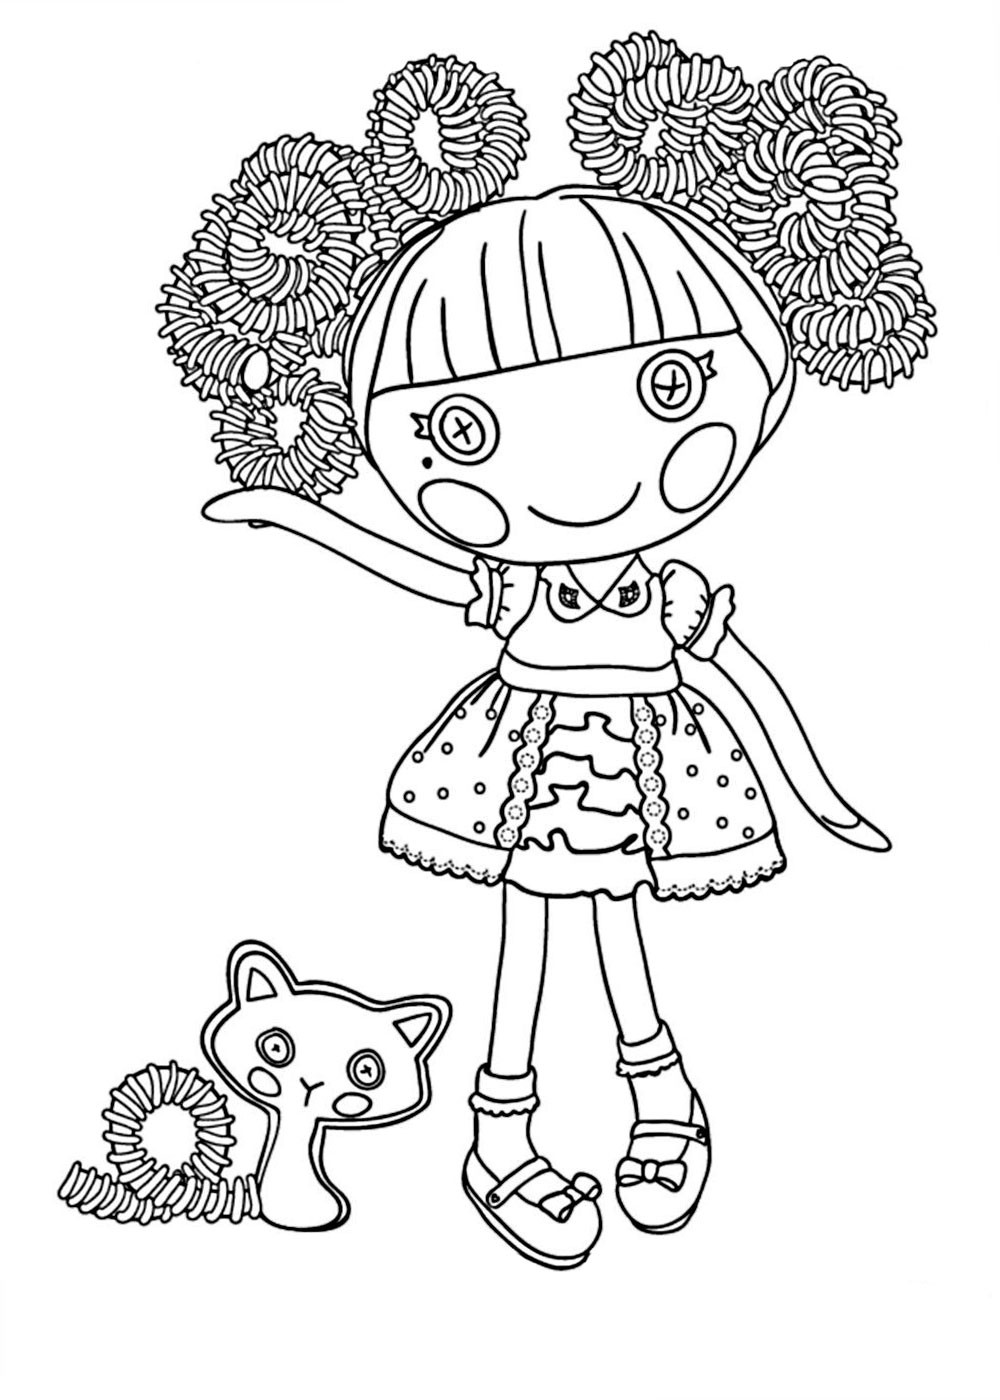 Lalaloopsy Printable Coloring Sheets  Lalaloopsy coloring pages for girls to print for free